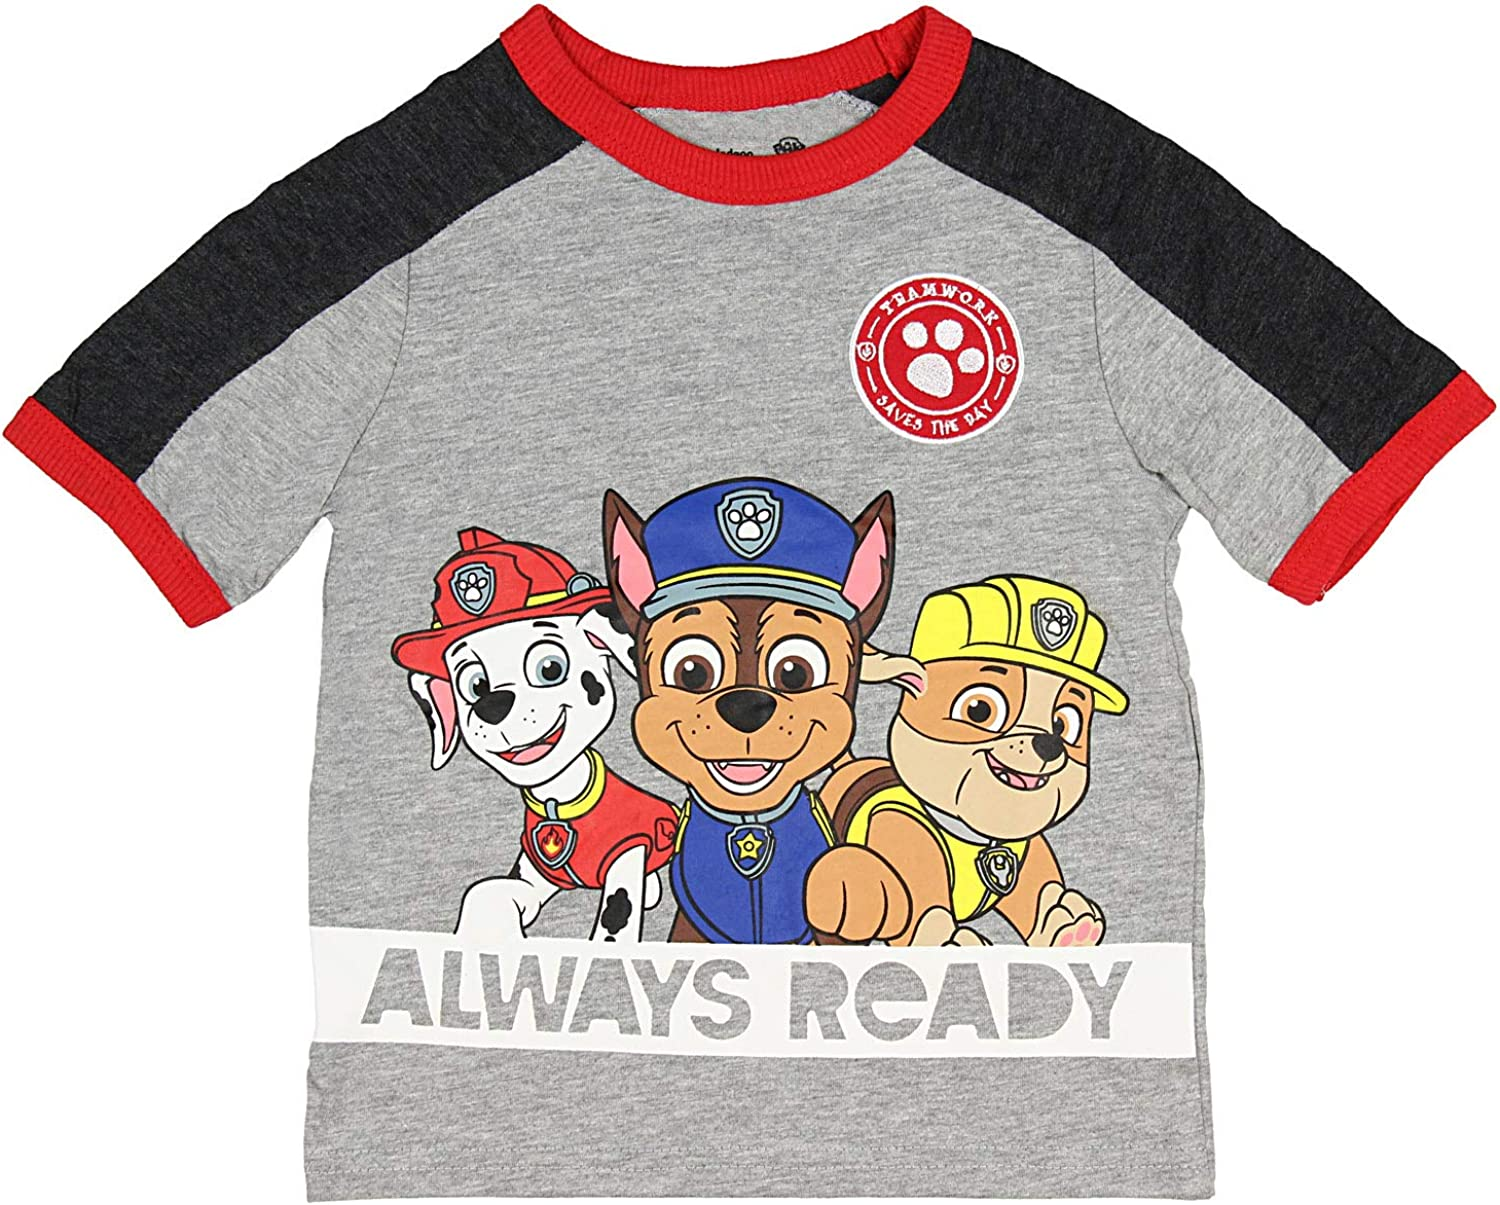 Paw Patrol Toddler Boys Always Ready Short Sleeve Graphic T-Shirt - Chase, Rubble and Marshall